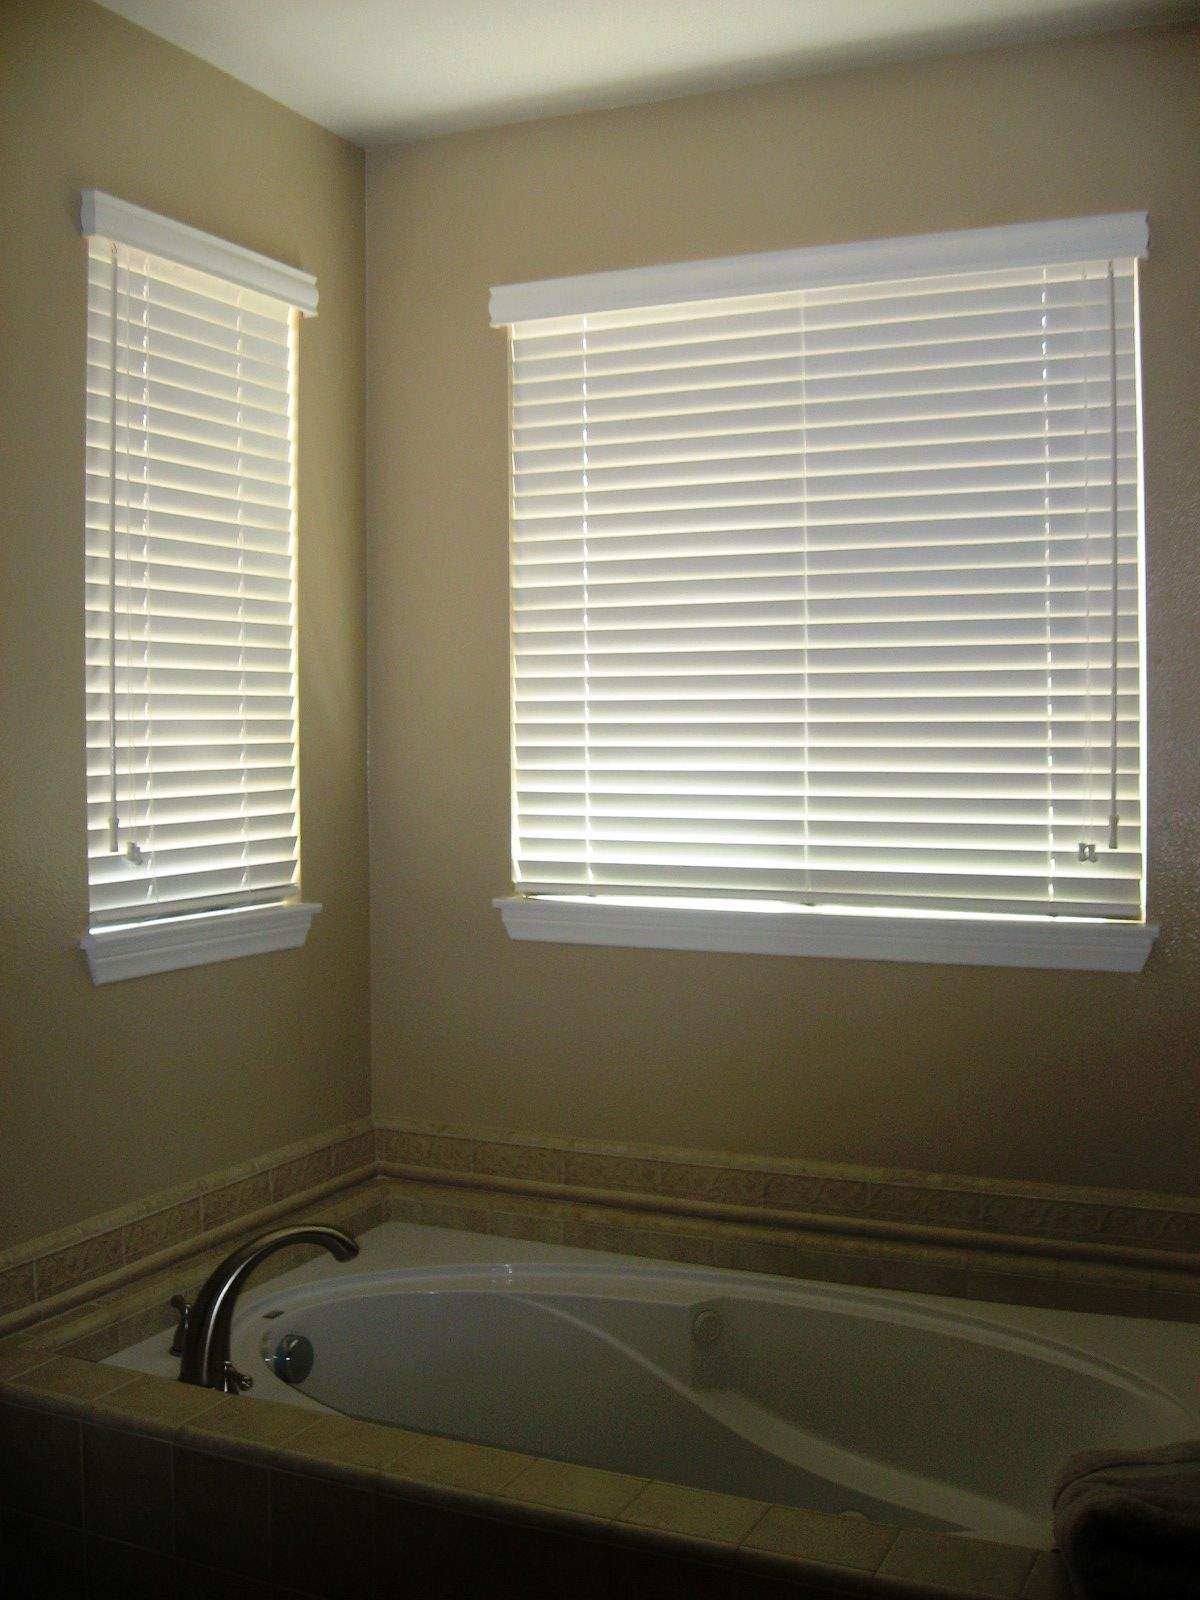 Bathroom window blinds - Contemporary White Roller Outside Mount Blinds For Inspiring Windows Draparies With White Tub And Arc Chrome Tub Faucet In Modern Bathroom Decor Views